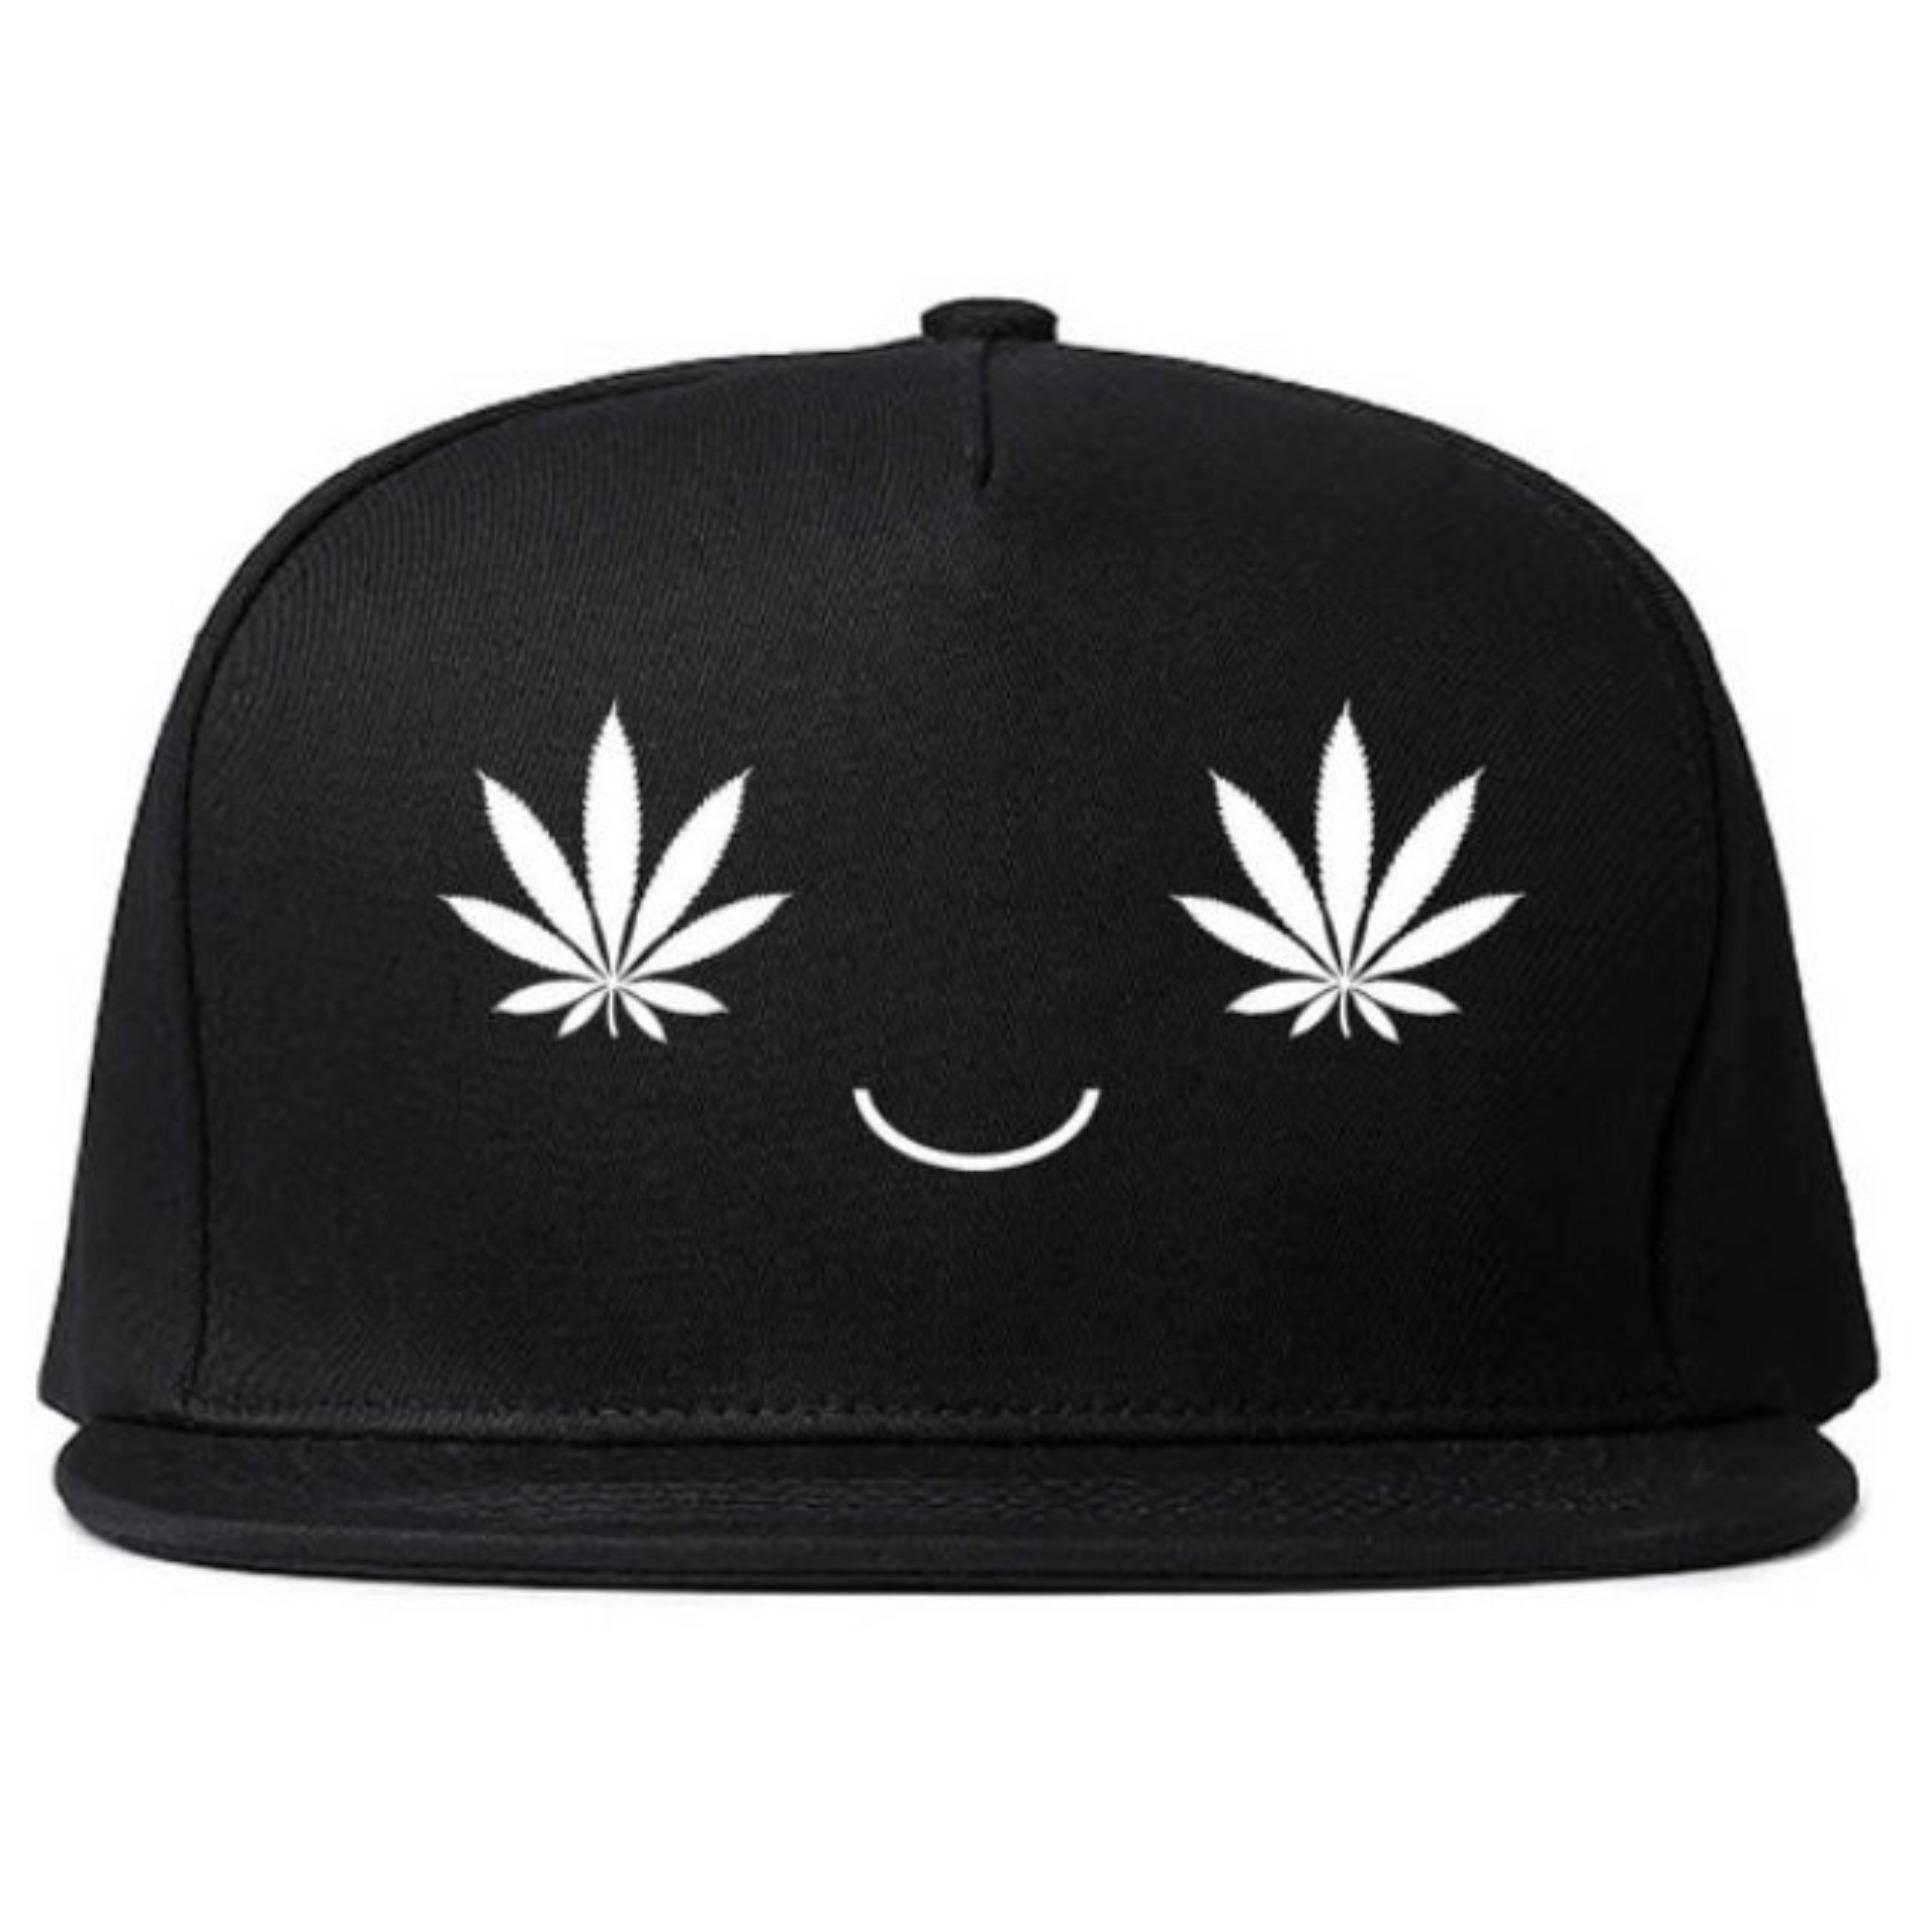 ... Kupluk Wol - Black. Source · LiveProsper Topi Snapback Happy Face -  Hitam 949f2dcb1d